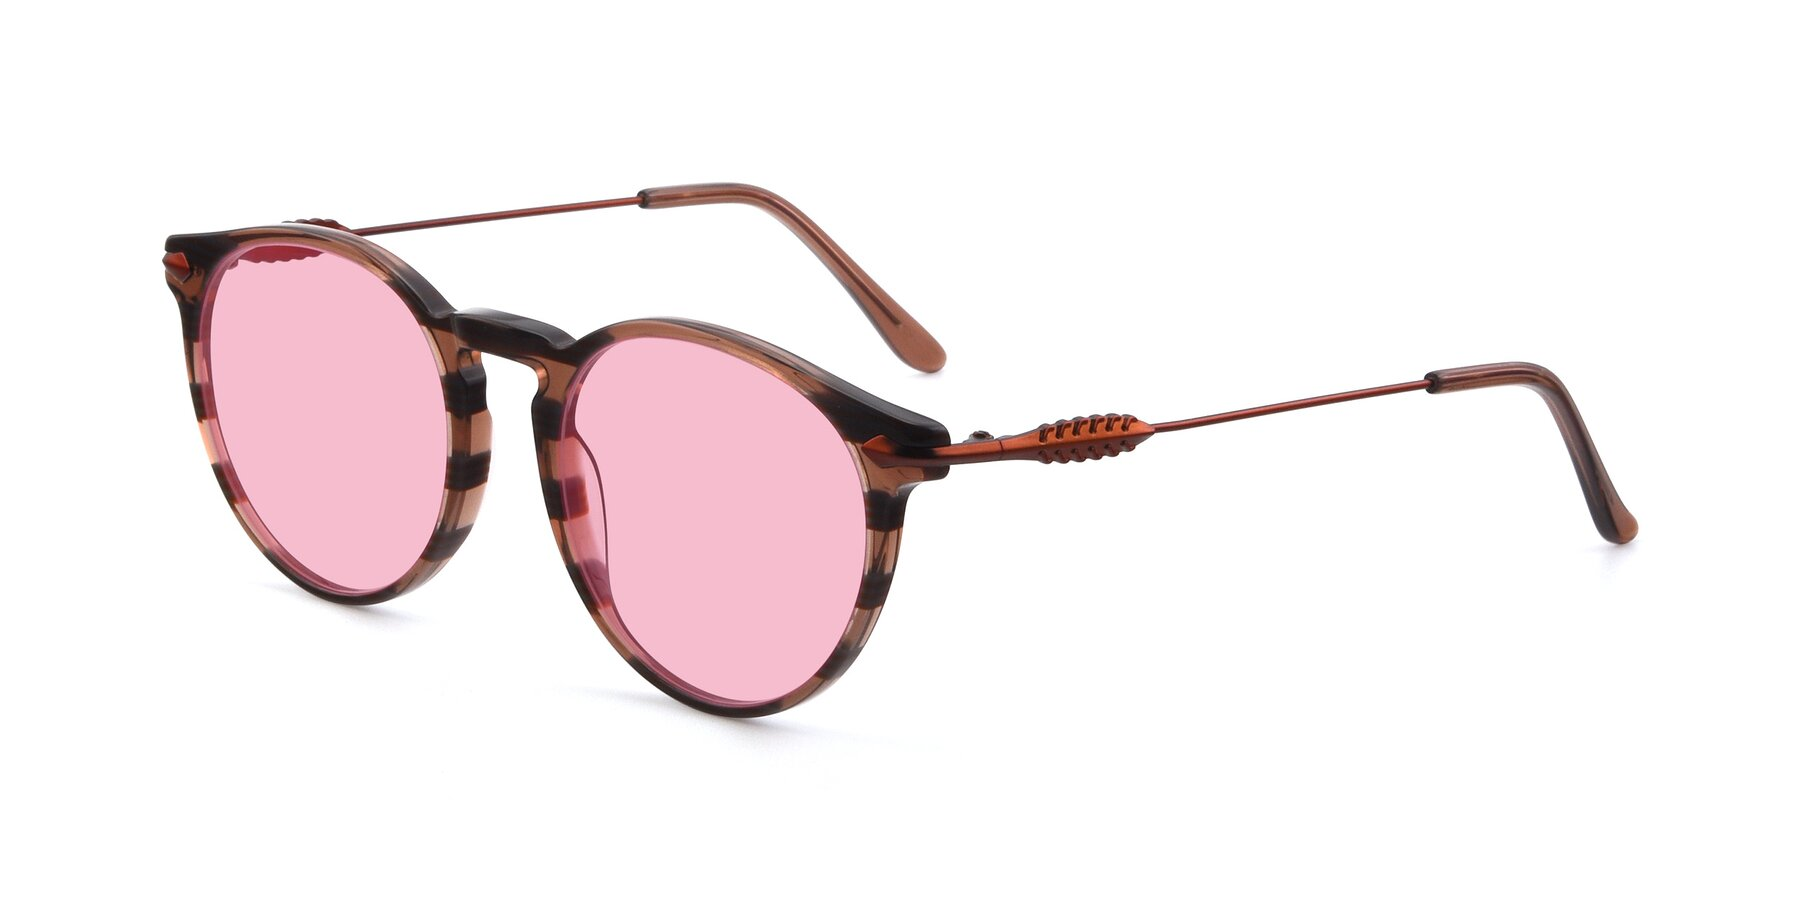 Angle of 17660 in Stripe Brown with Medium Pink Tinted Lenses